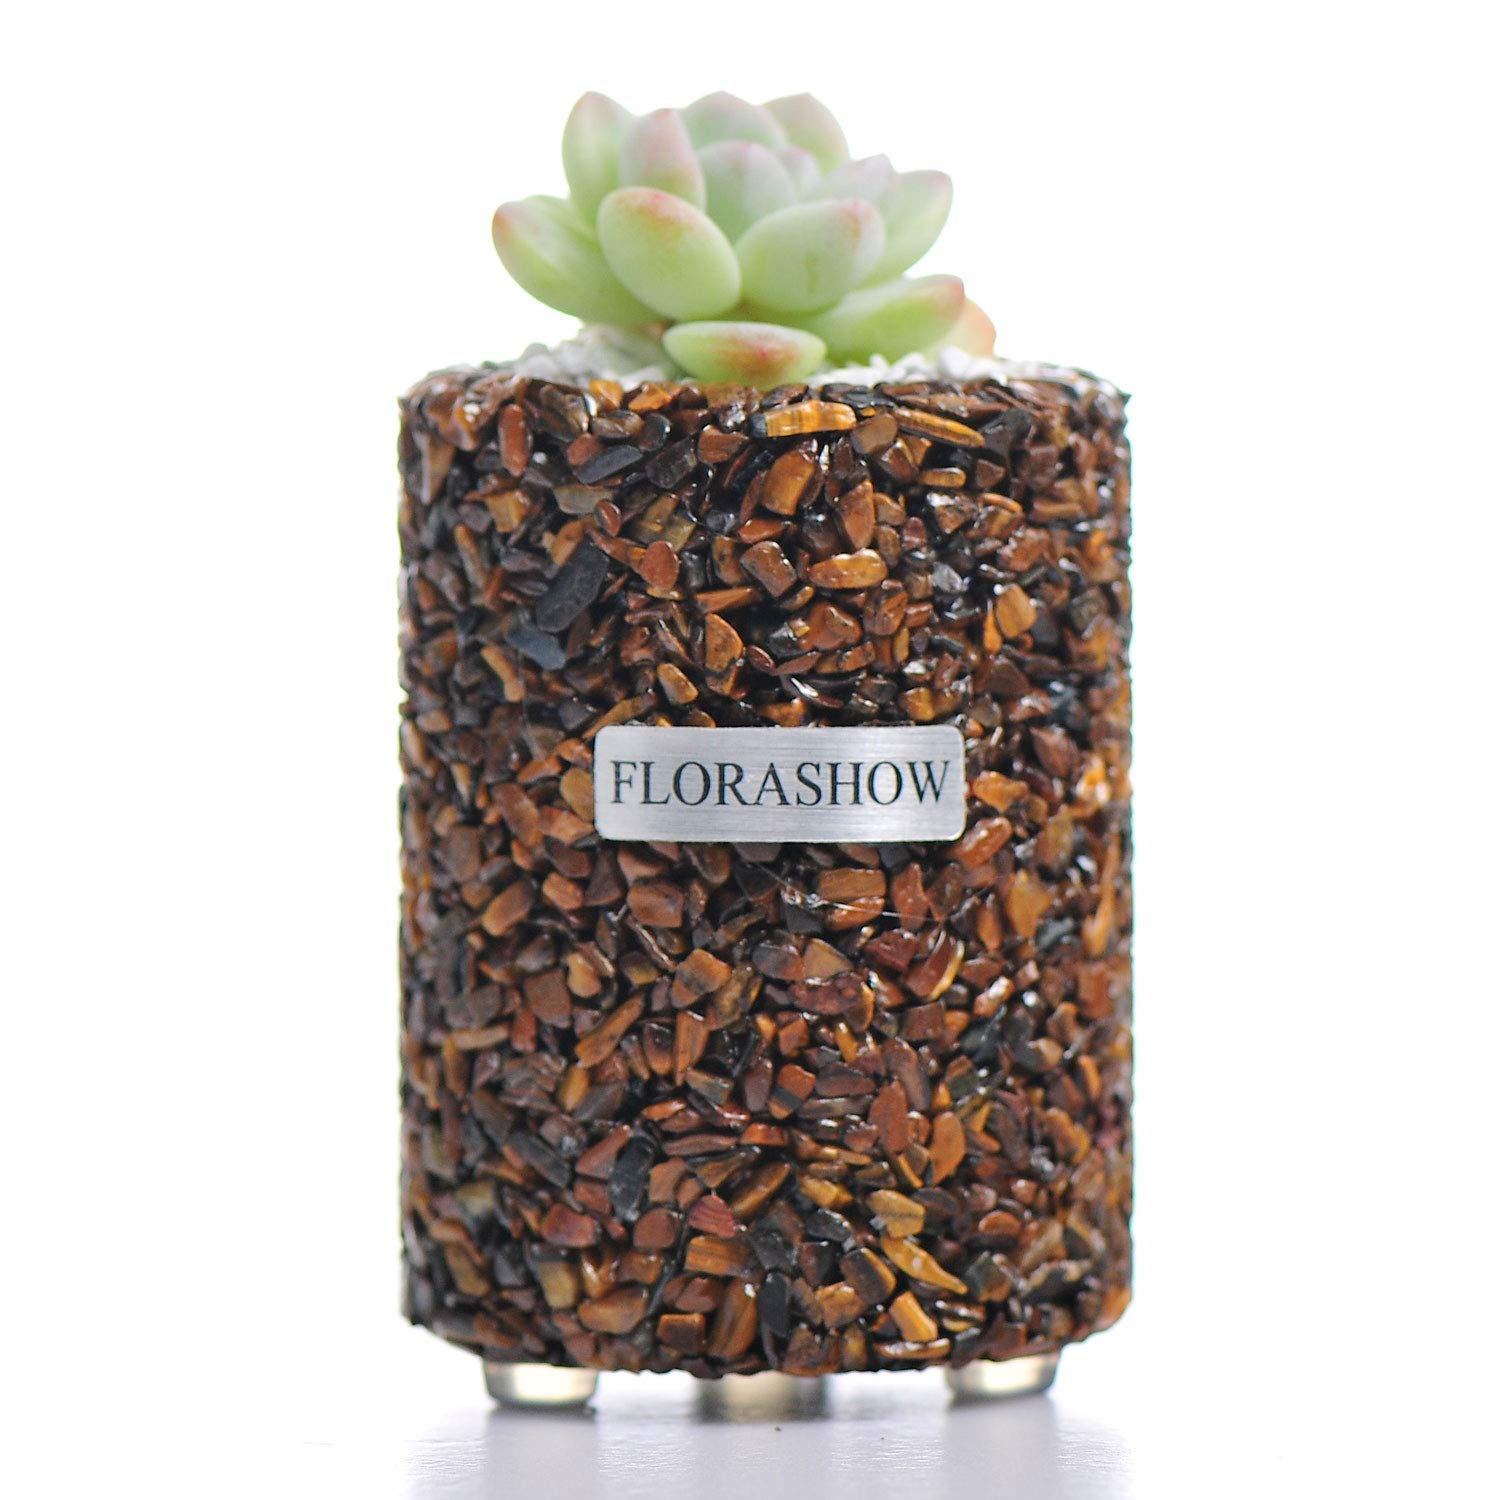 FLORASHOW Tumbled Stones Succulent Pots - Tiger's Eye 2.63 inch Mini Succulent Planter, Great for Reiki Healing Home Decorations, Suitable for Succulents, Cactus, Smaller Plants and More